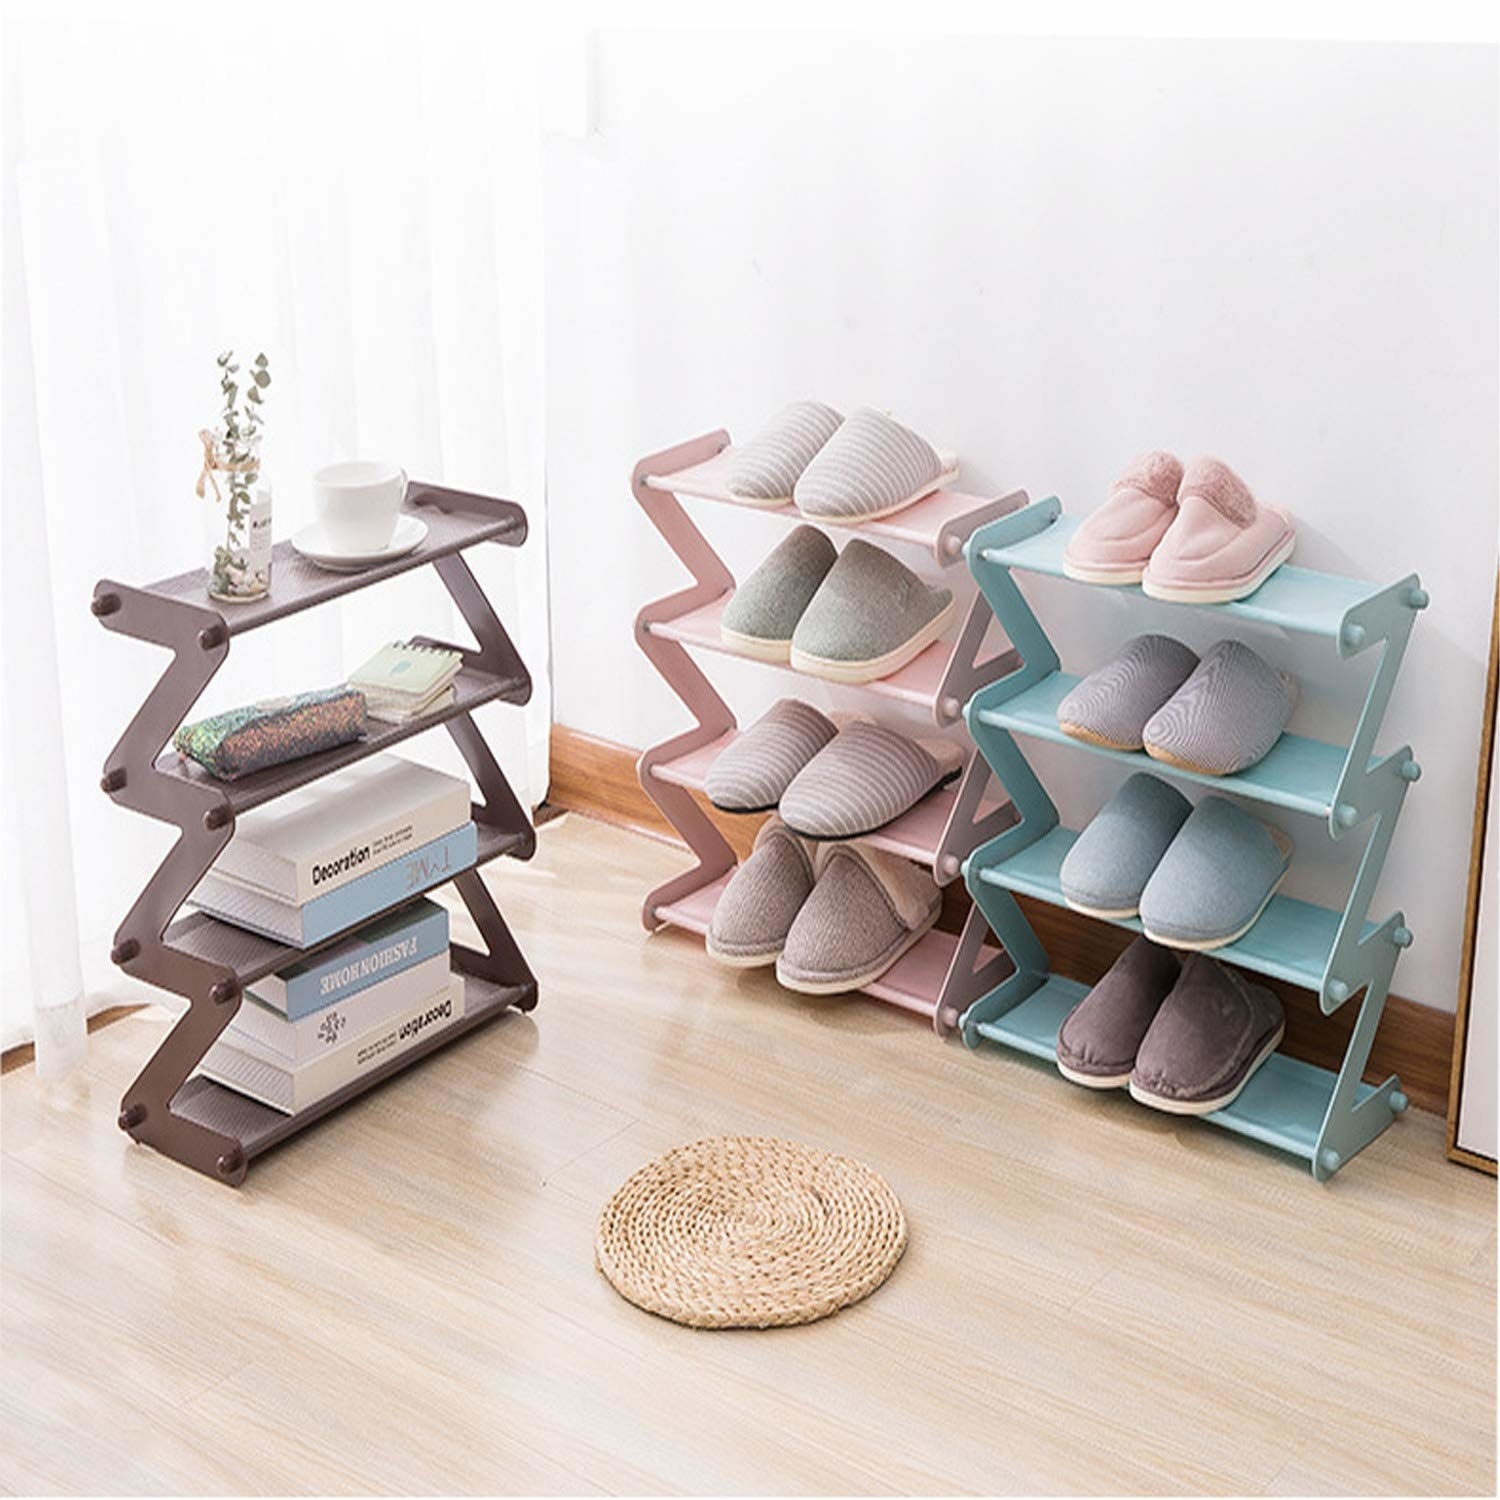 Two racks with shoes, and one with books and other knickknacks